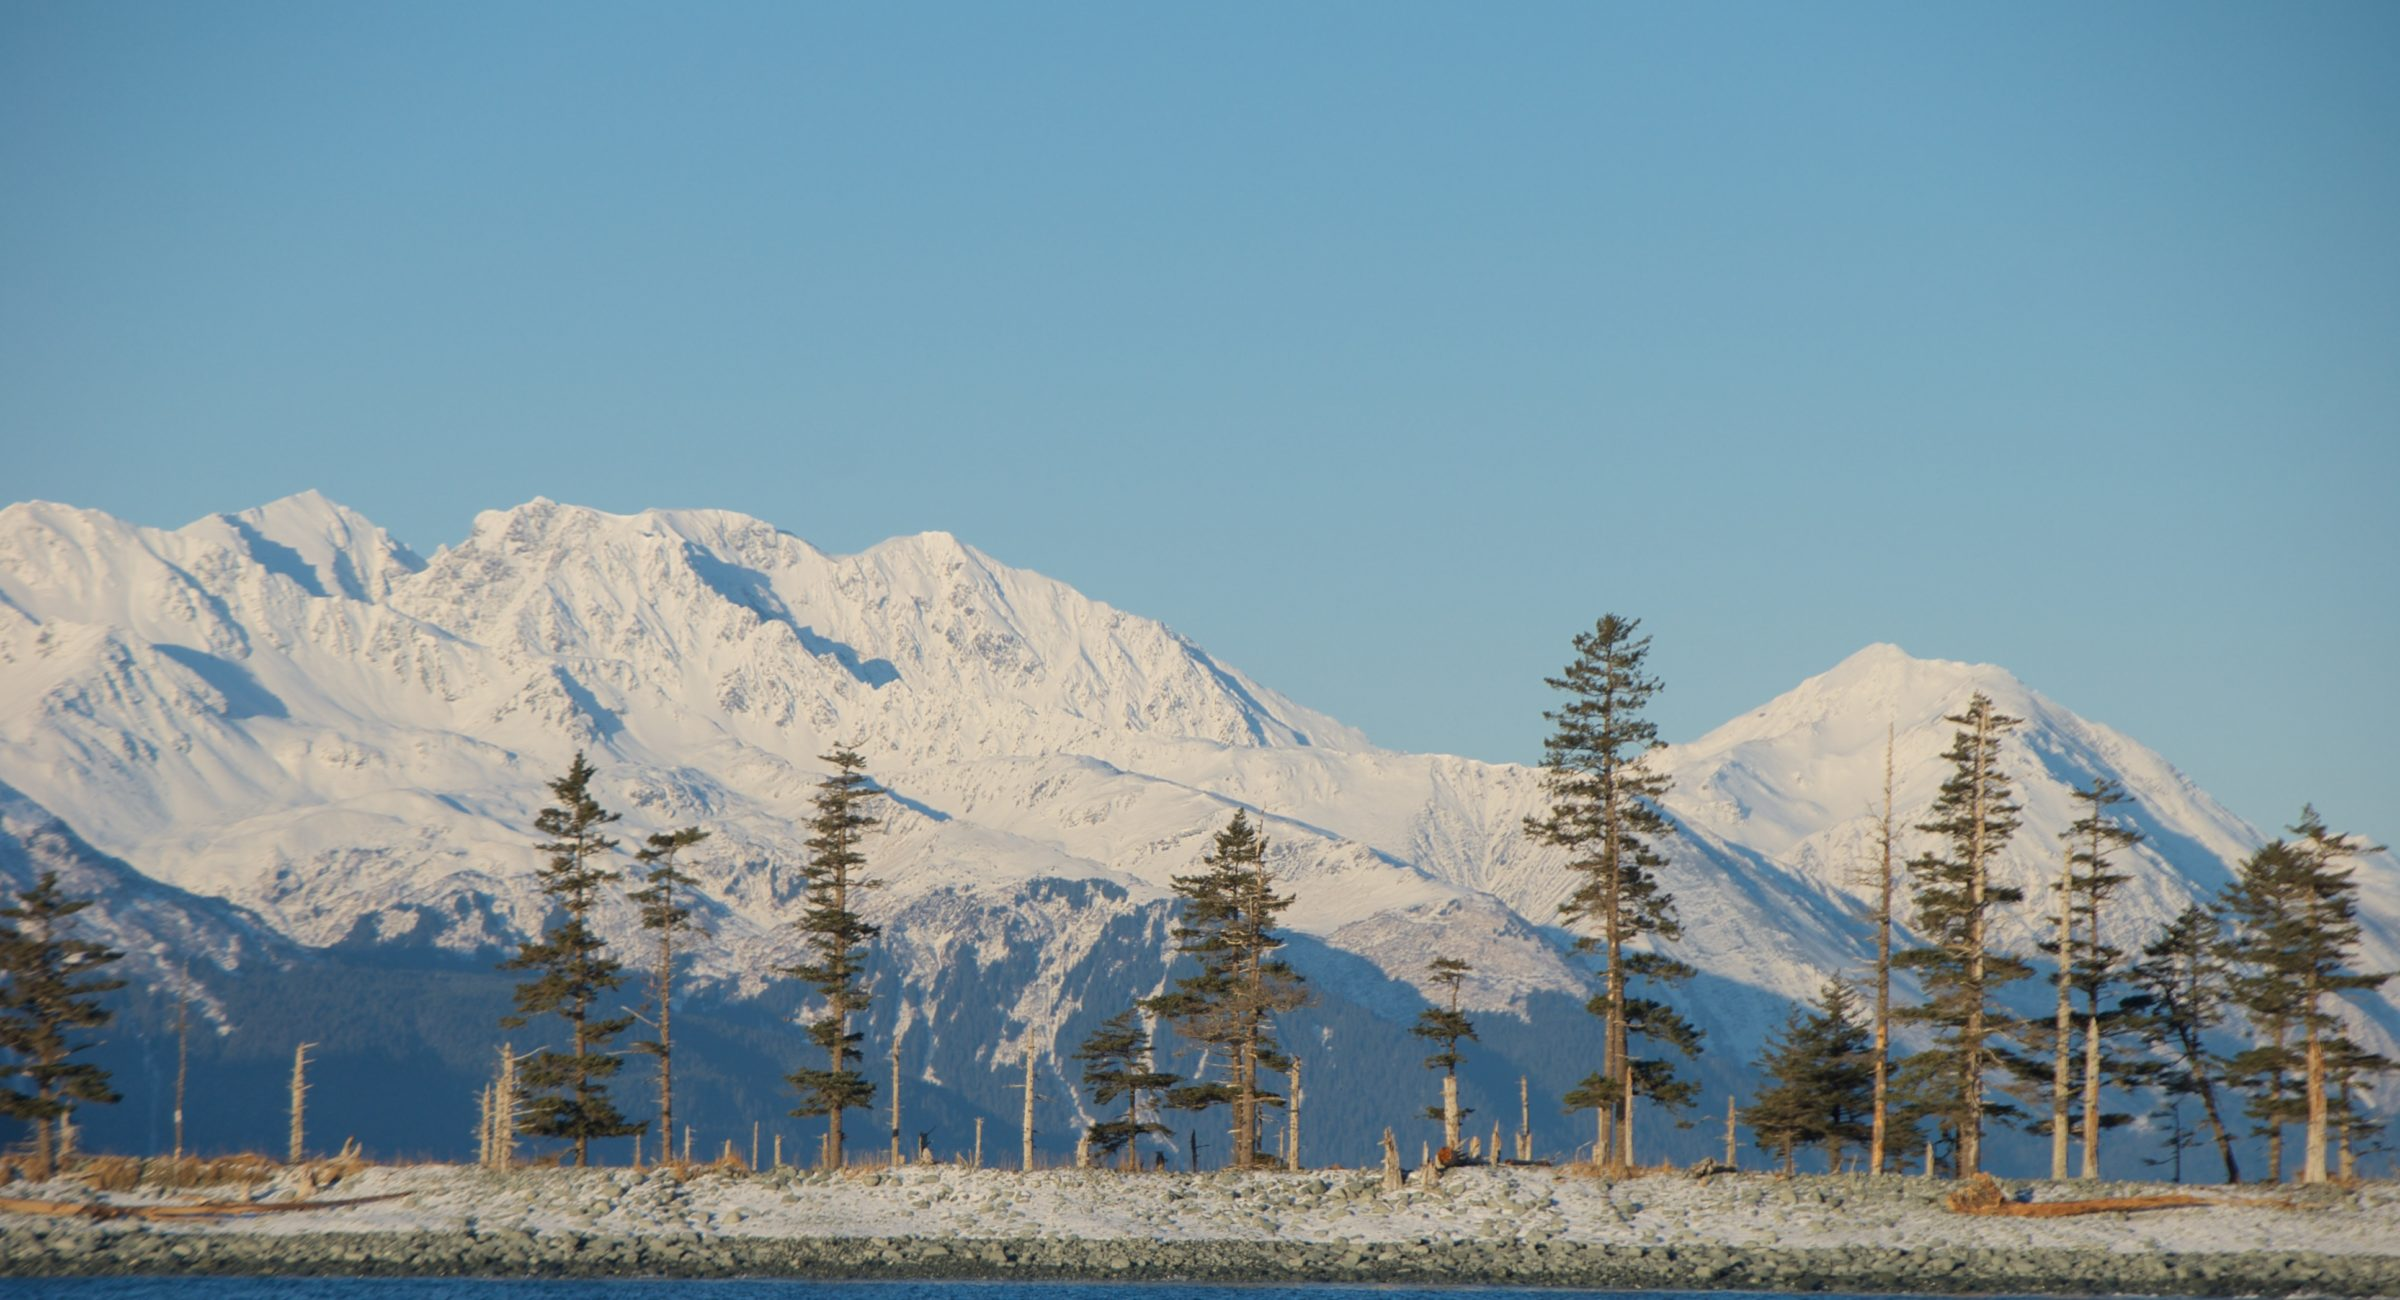 The mountains above Fox Island Spit in winter.